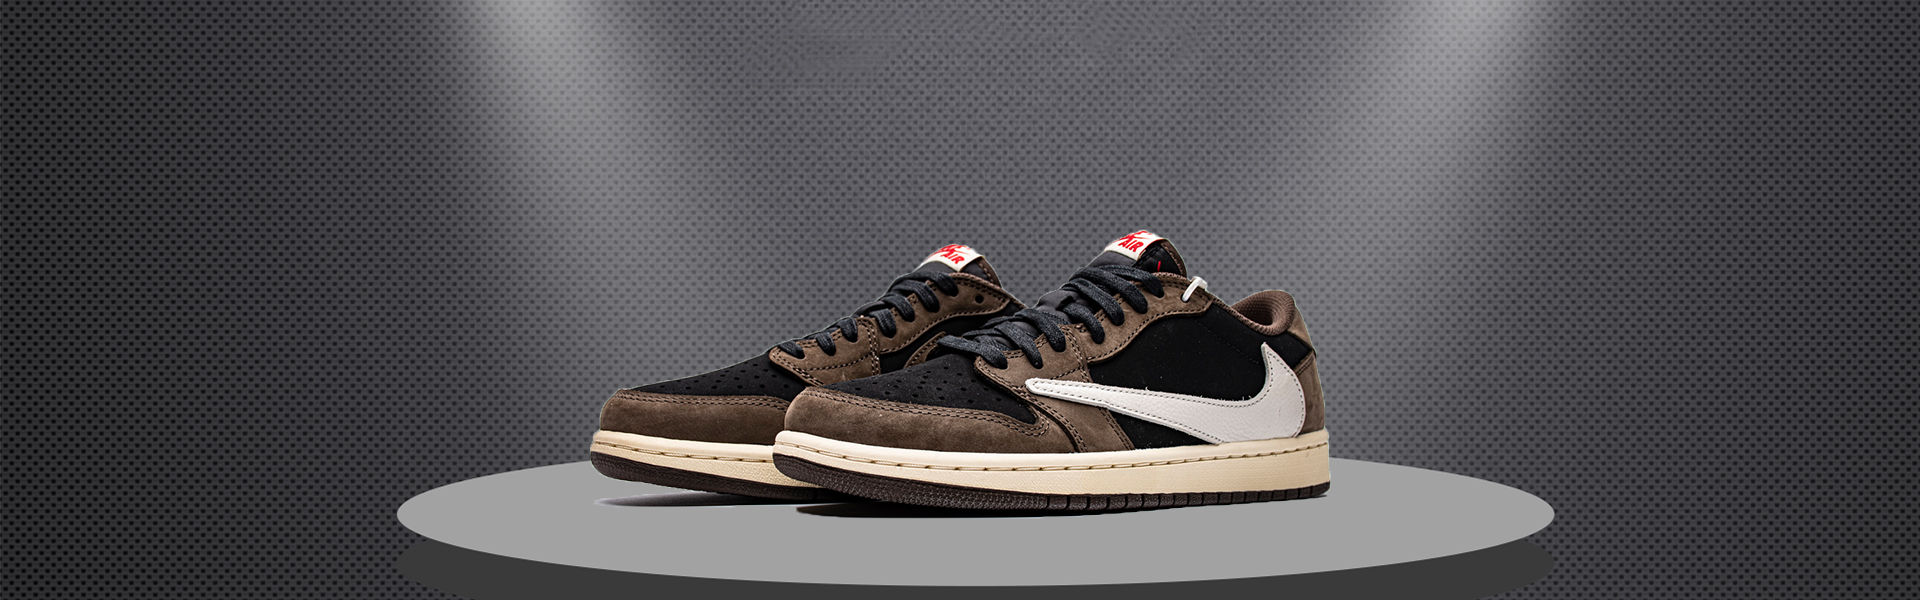 X BATCH UNISEX TRAVIS SCOTT X AIR JORDAN 1 LOW CQ4277 001